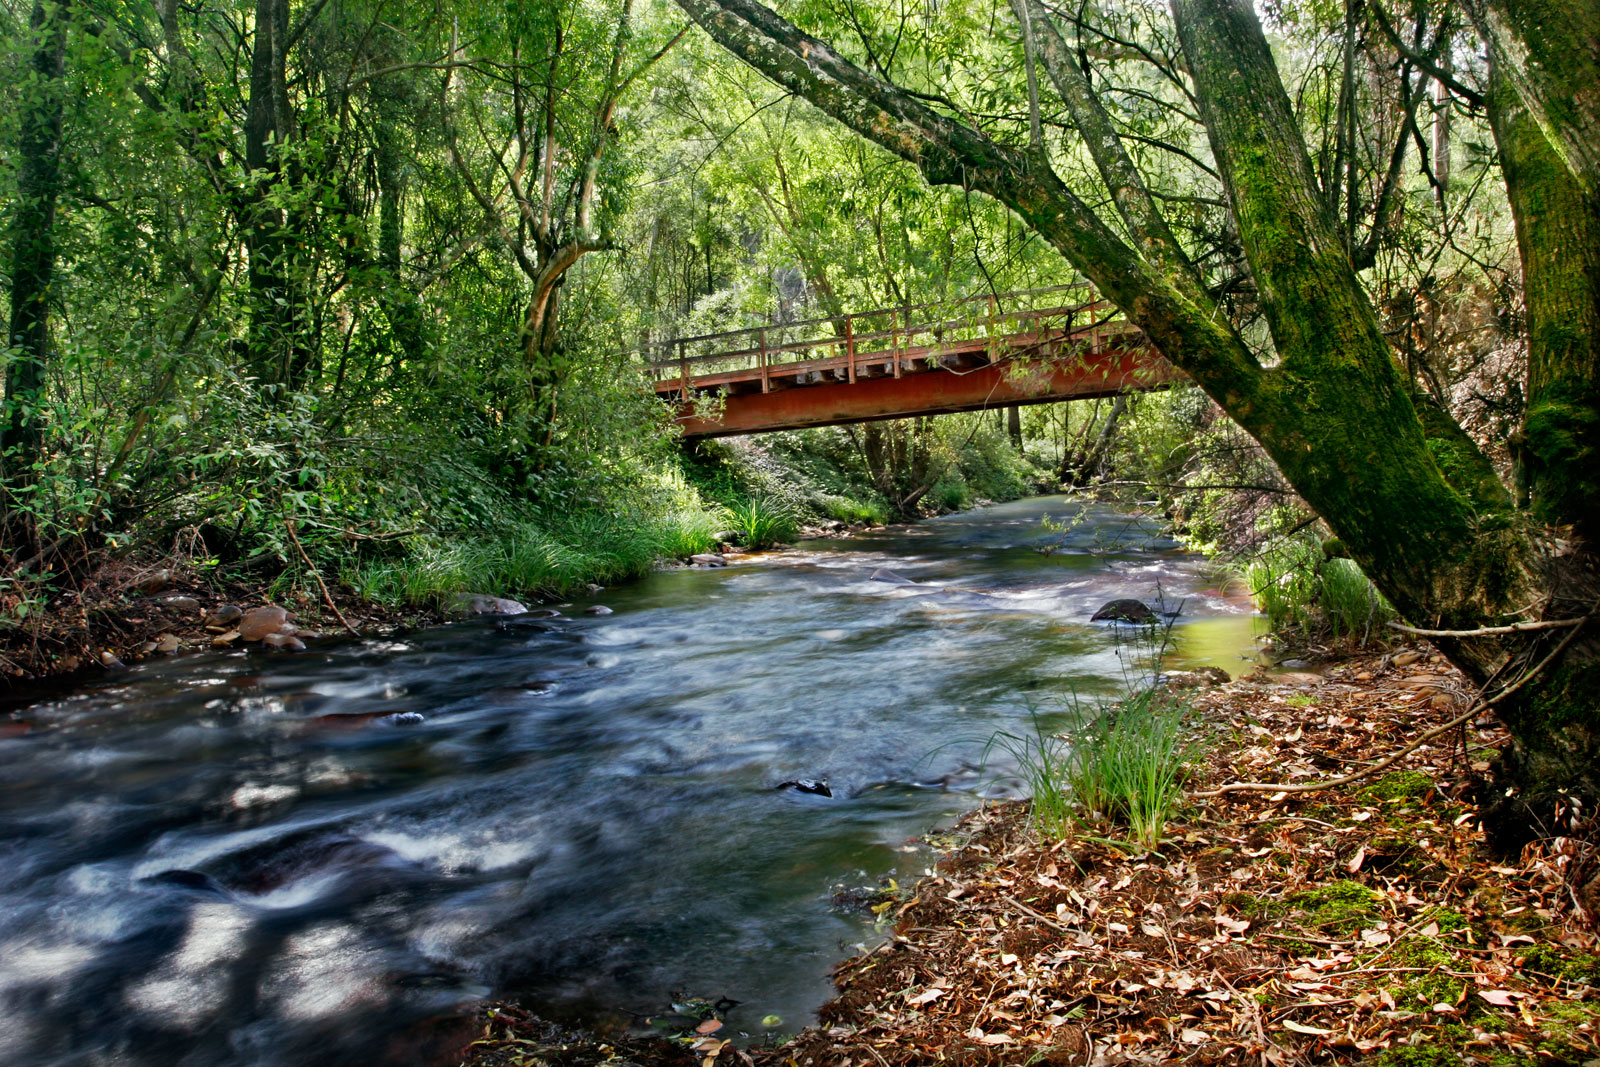 http://upload.wikimedia.org/wikipedia/commons/1/19/River_in_harrietville_trout_farm.jpg